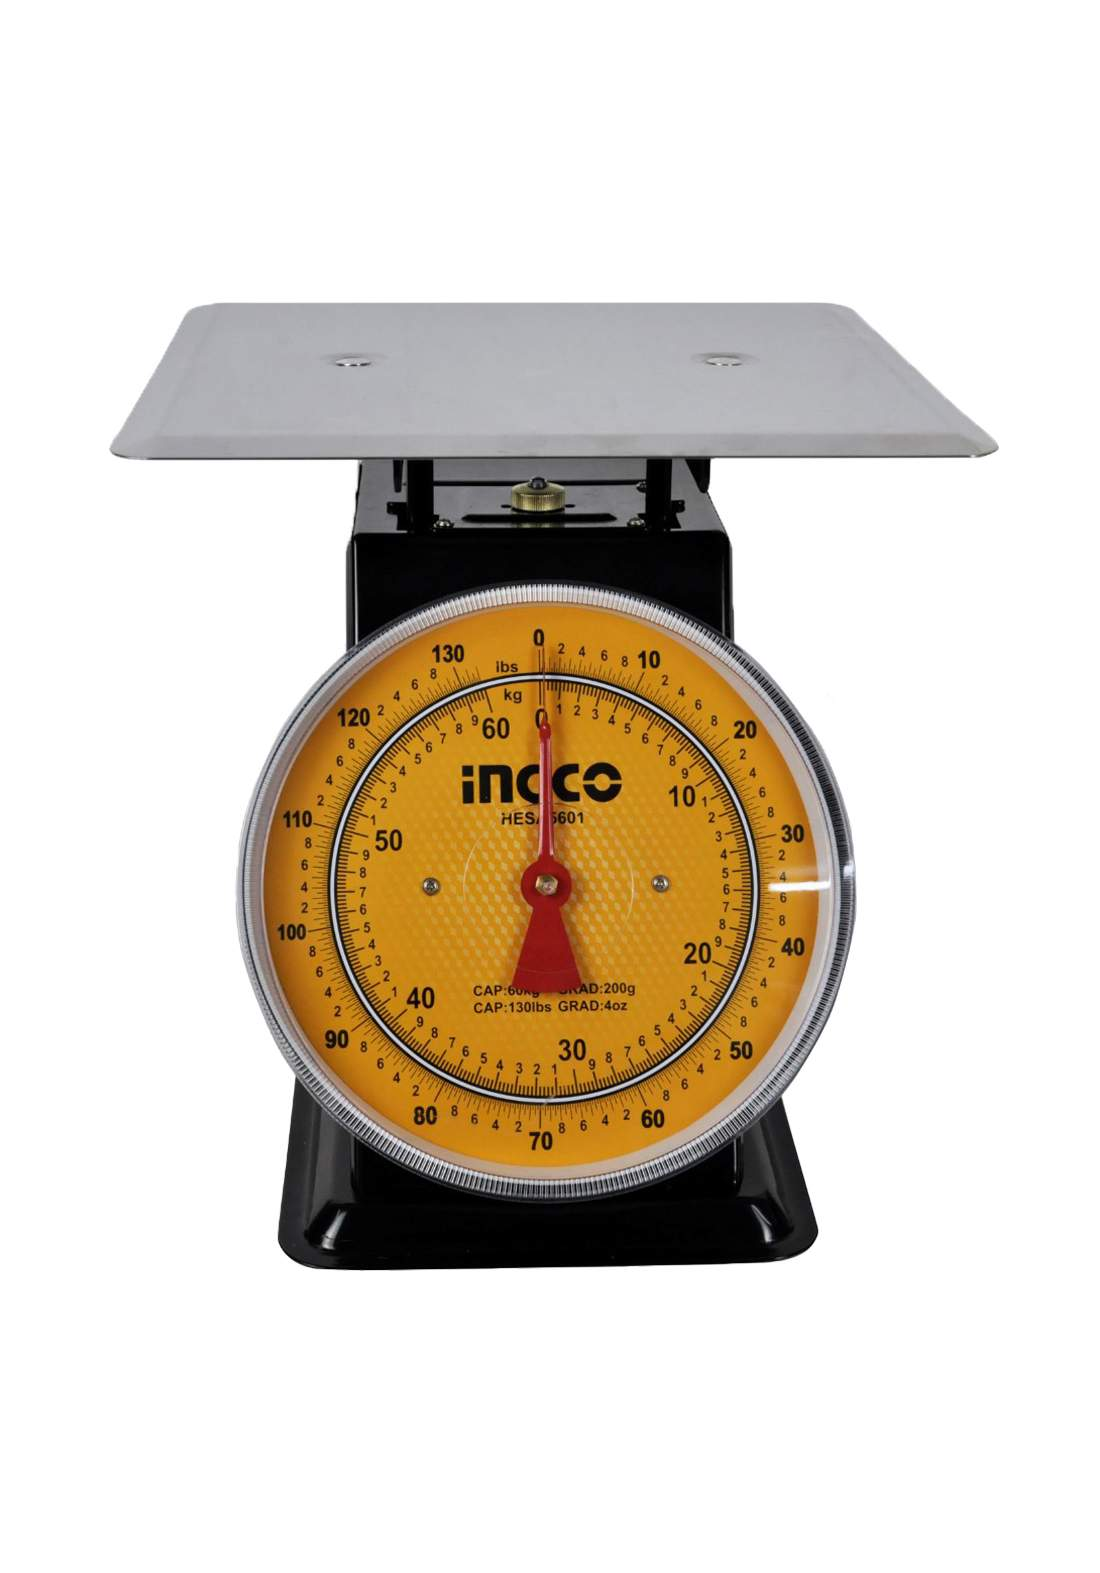 Ingco  HESA5601 Spring Table Scale 60kg  ميزان طاولة